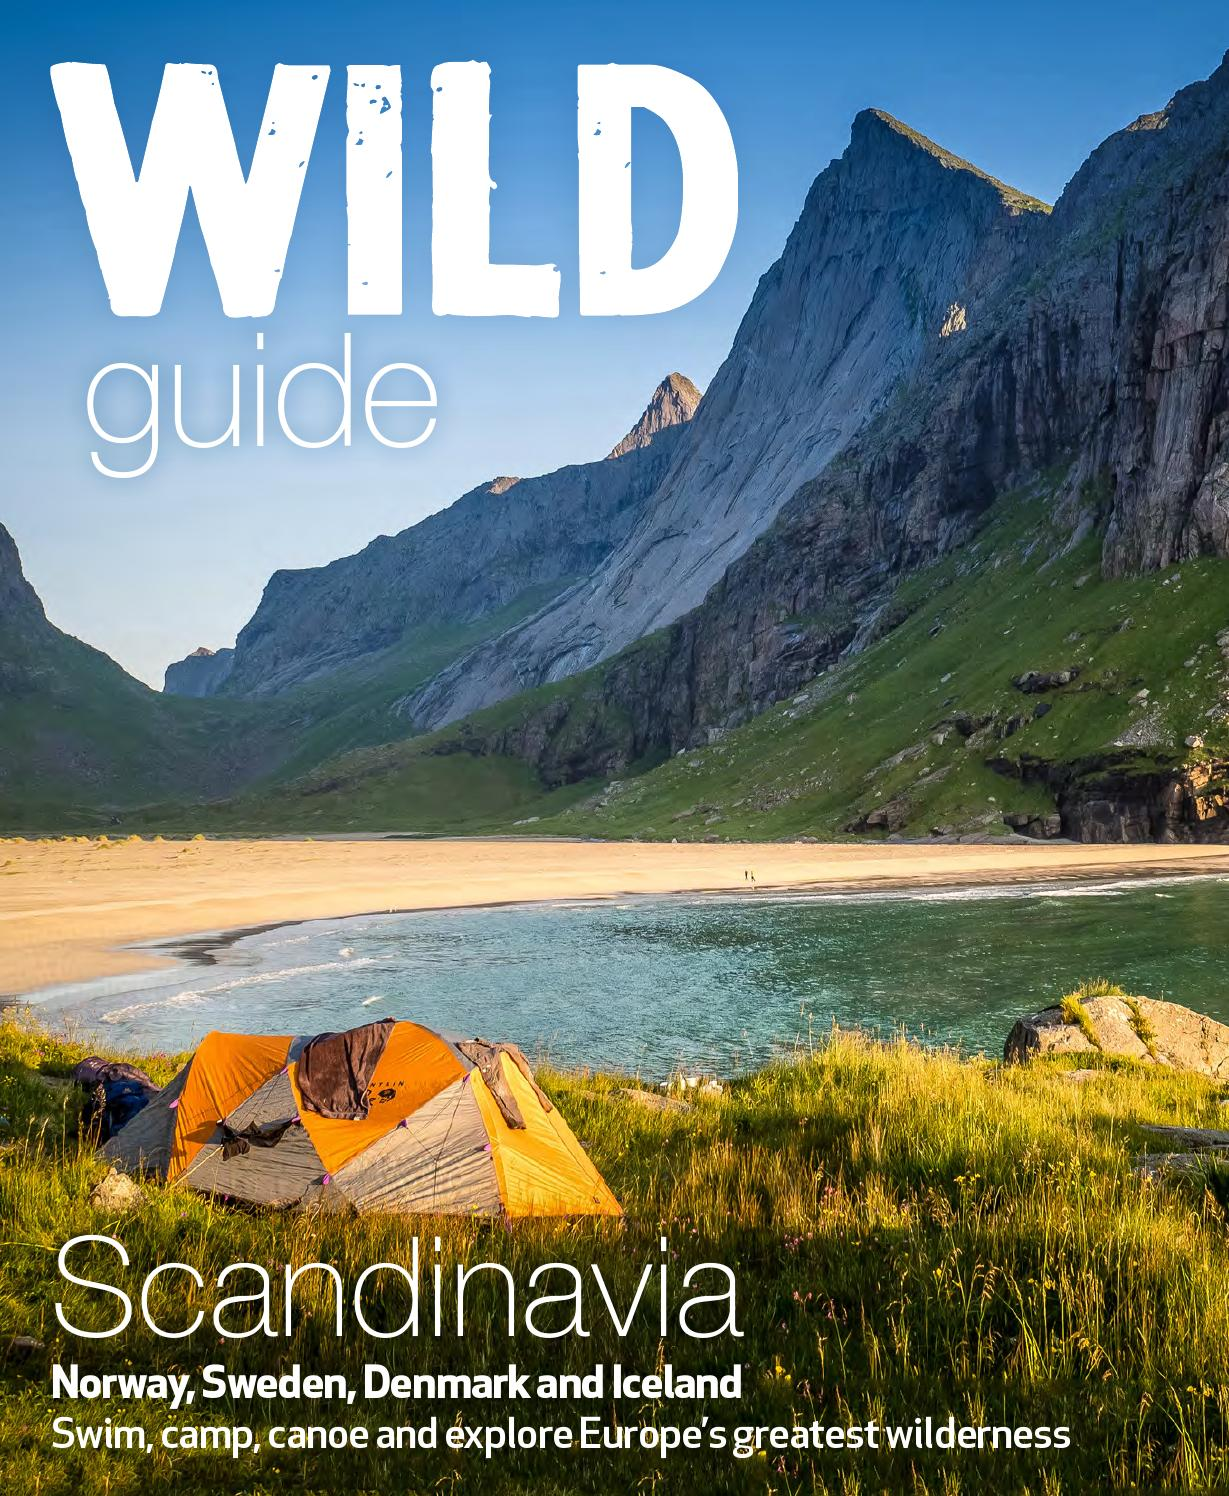 Magical Places To Stay In Europe: Wild Guide Scandinavia Issuu By Wild Things Publishing